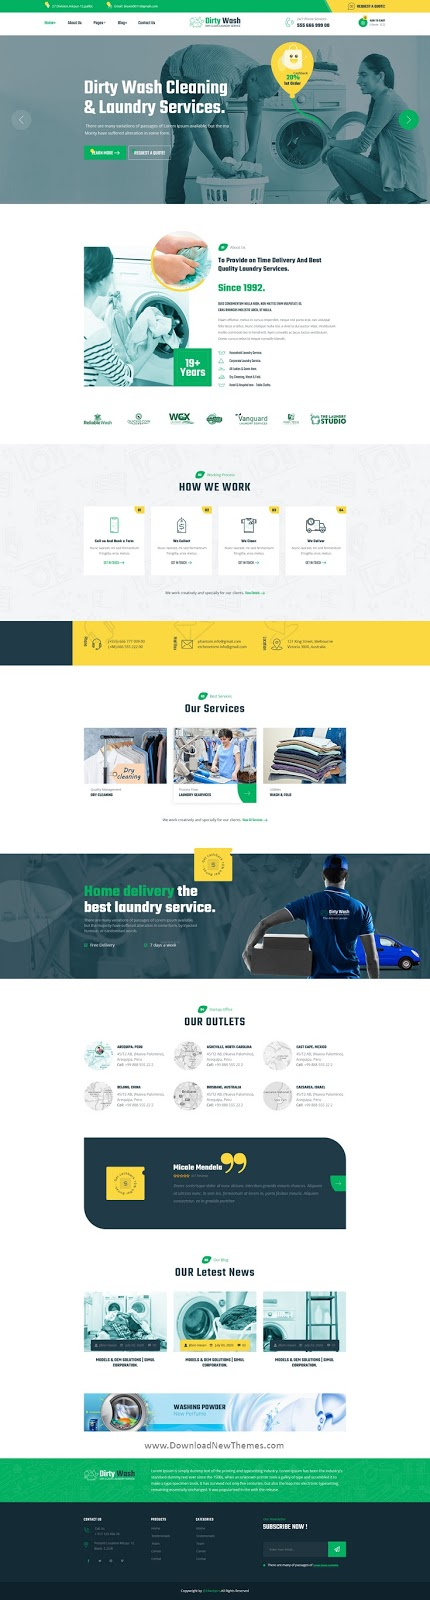 Dry Cleaning & Laundry Service Website Template